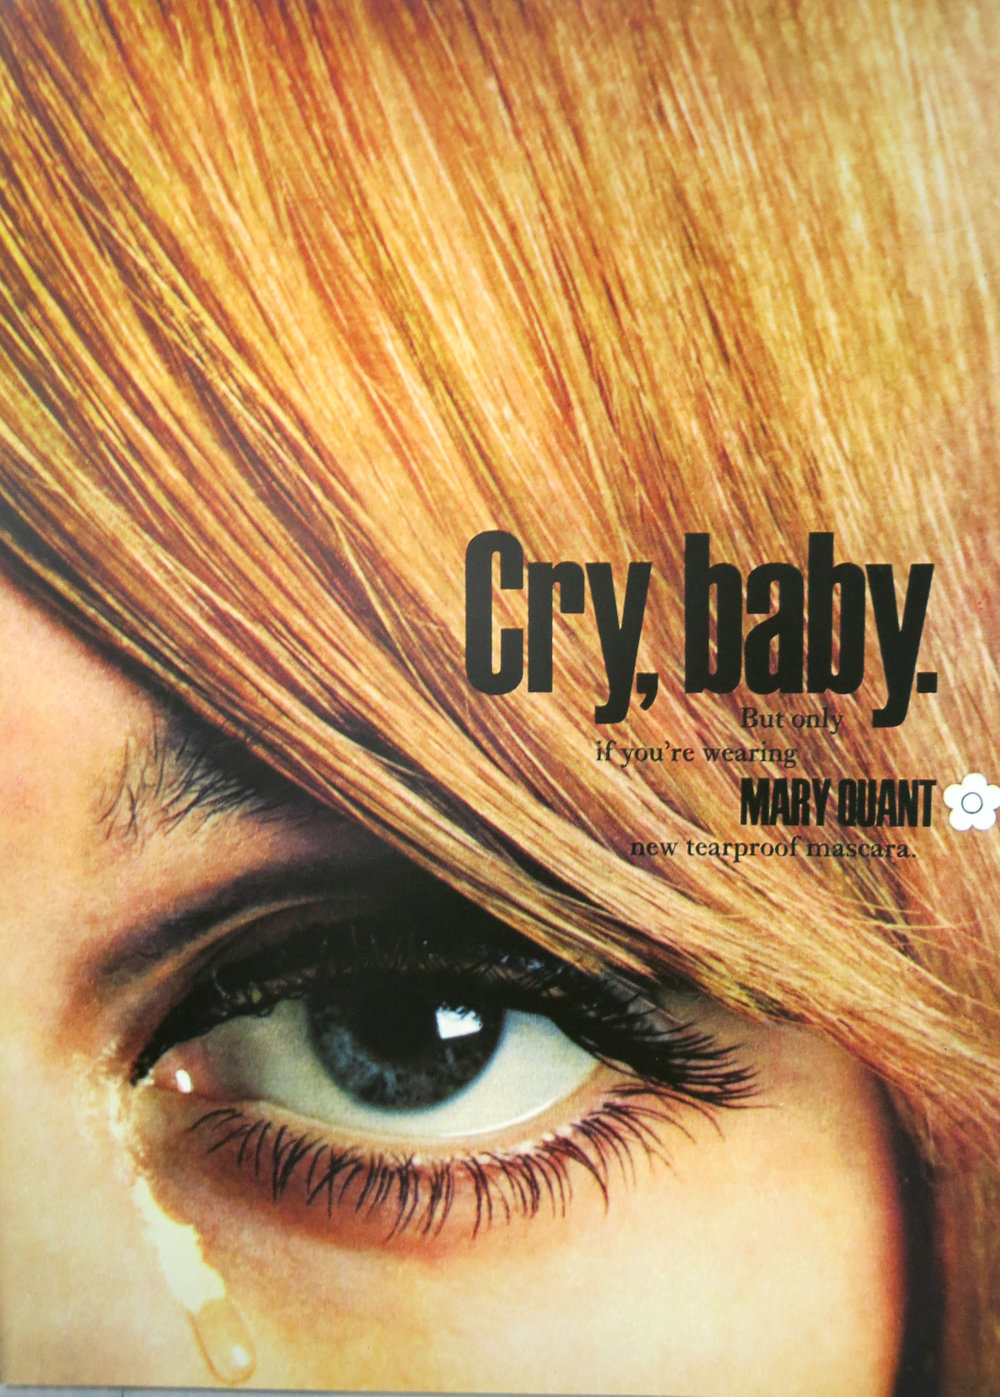 Mary+Quant+at+V_and_A+Cry+Baby+advertisement.jpg